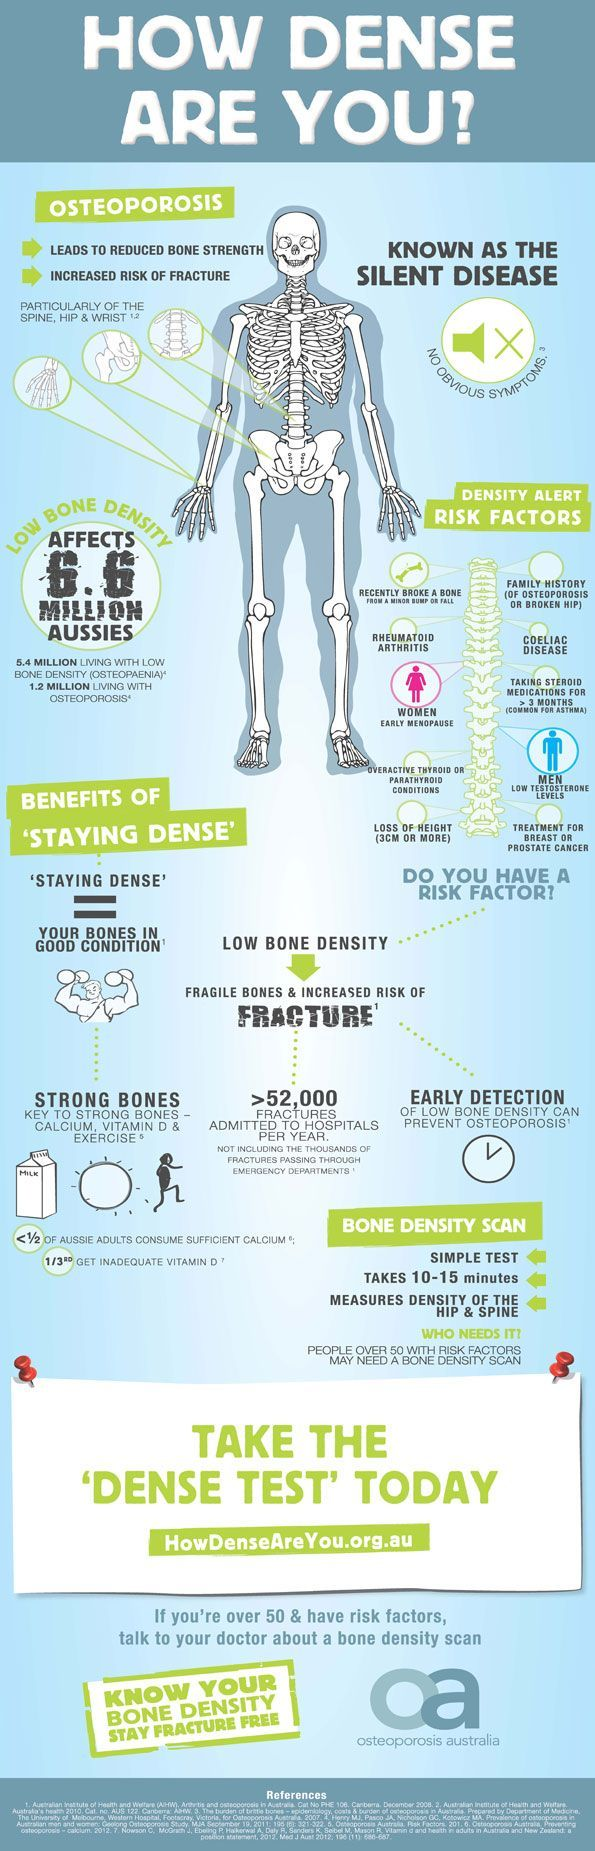 Changes in bone mineral density with age in men and women ...